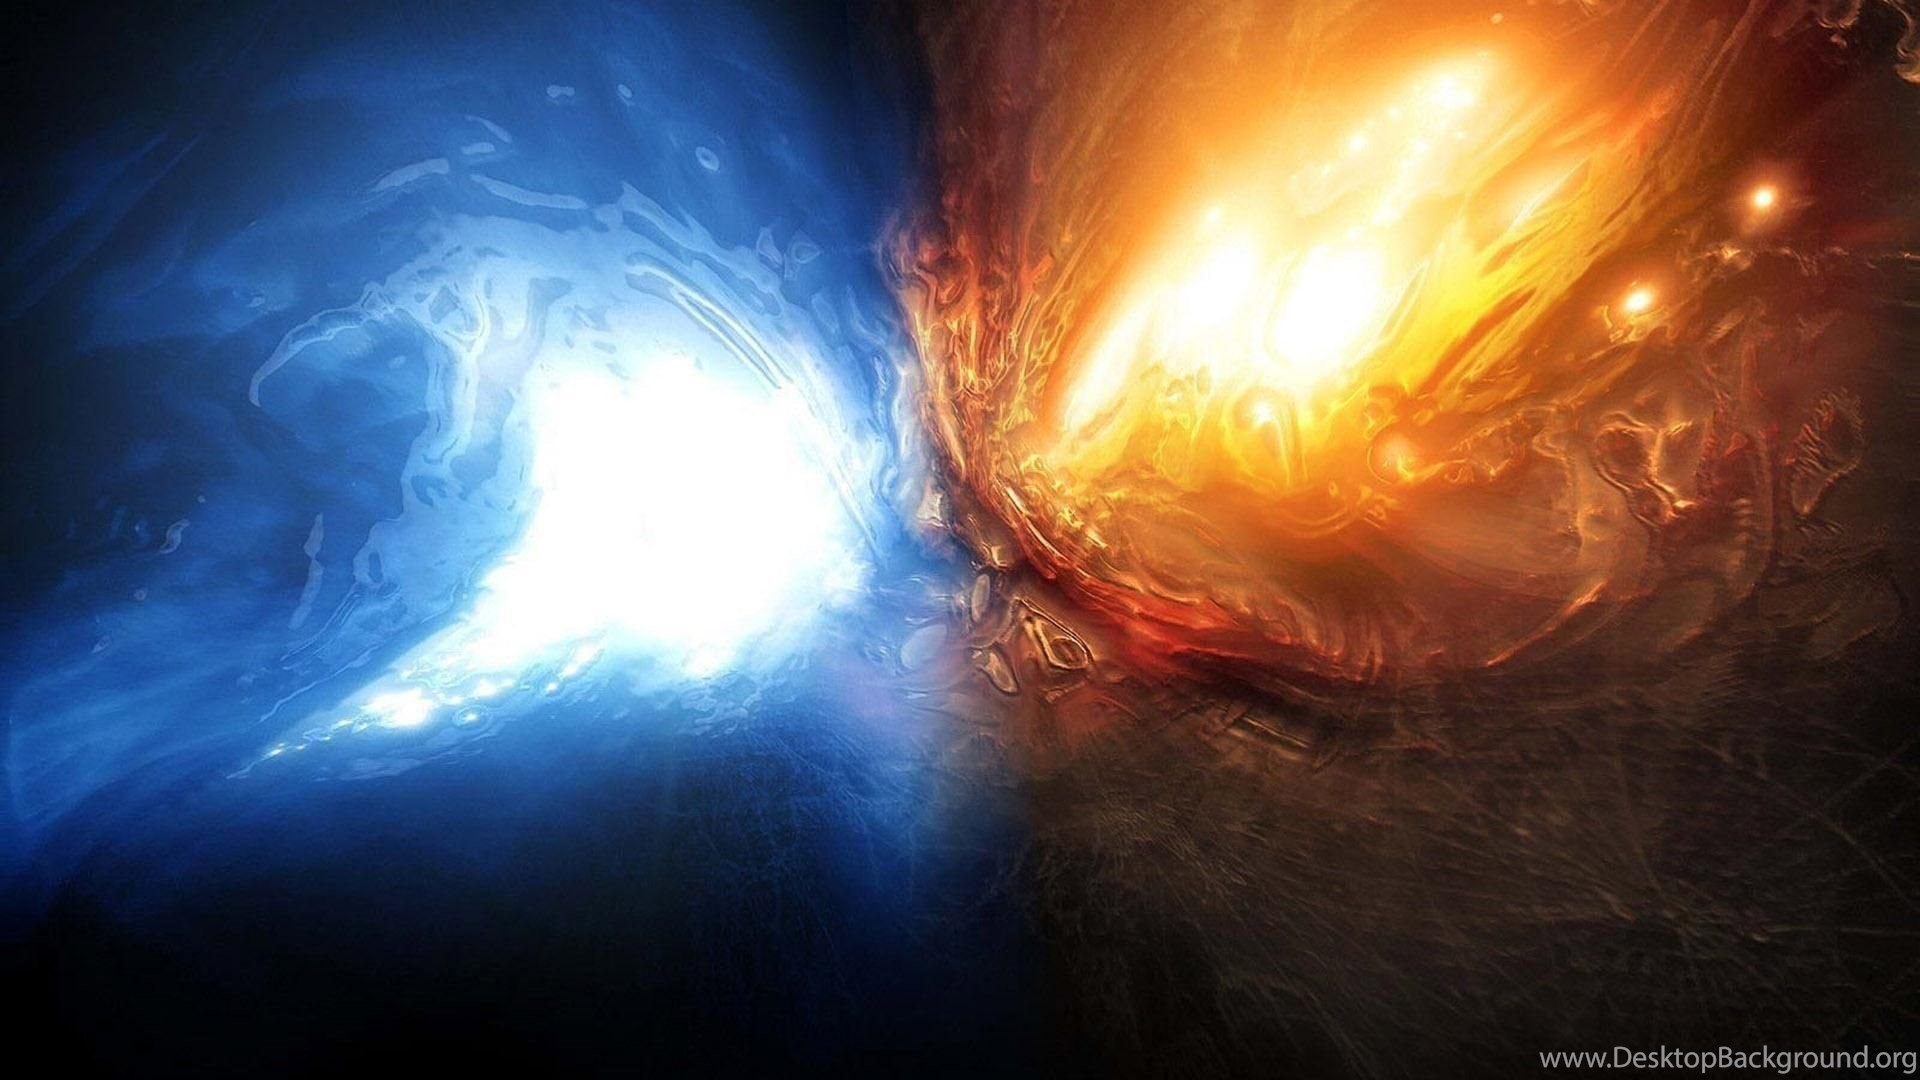 Cool Fire and Water Wallpaper (71+ images)